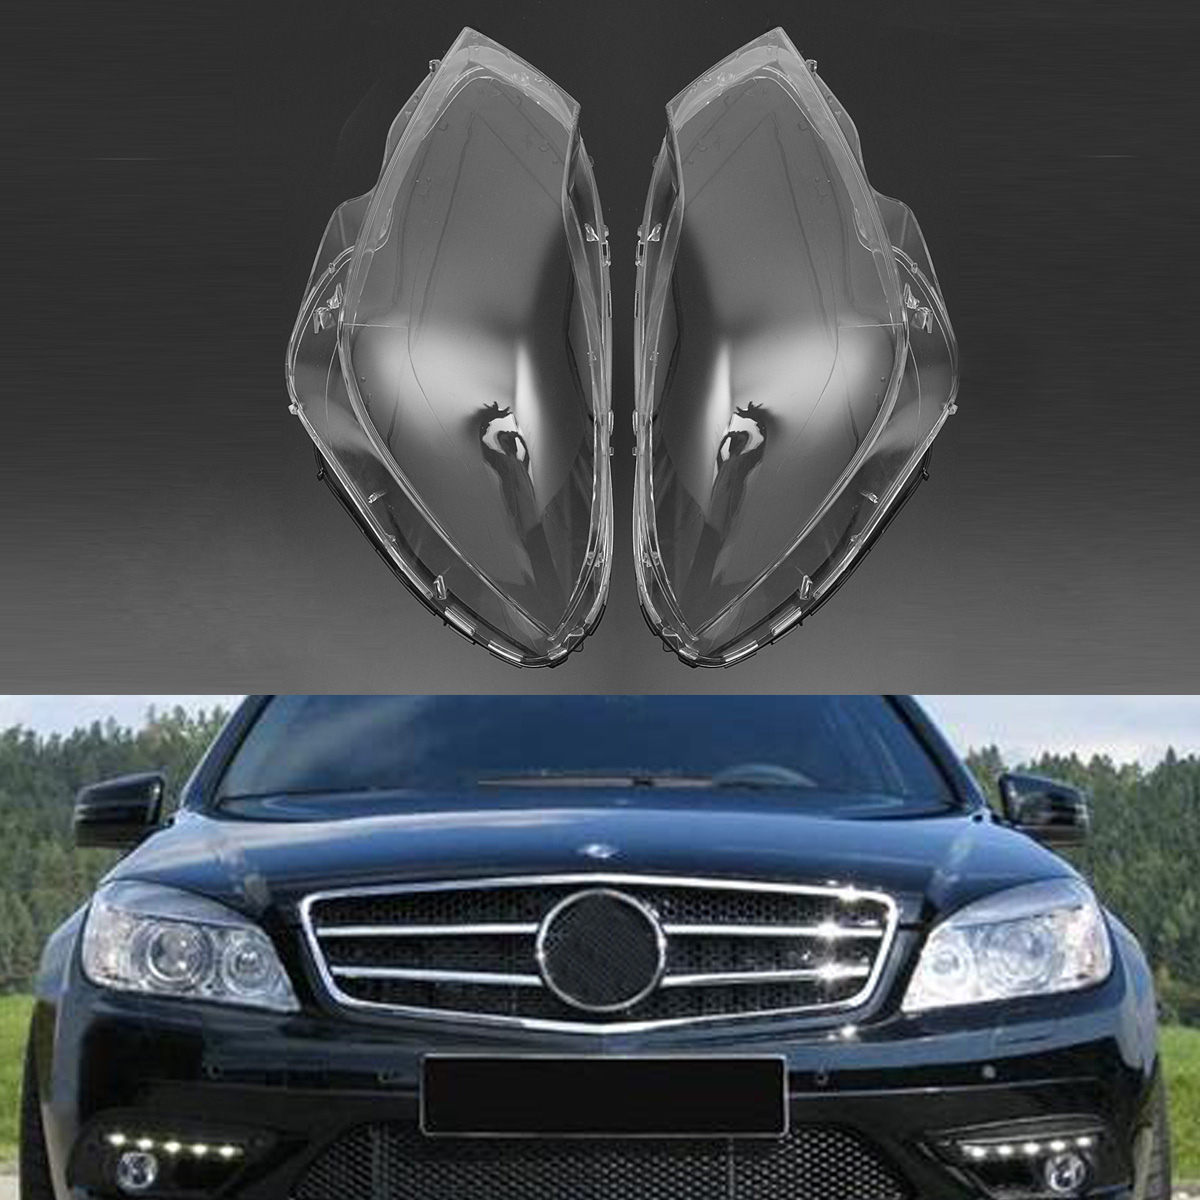 New 1 Pair Left &Right Car Headlight Headlamp Fog Light Clear Lens Light Covers Case for Mercedes C Class W204 2007-2011 mzorange new 1 pair left